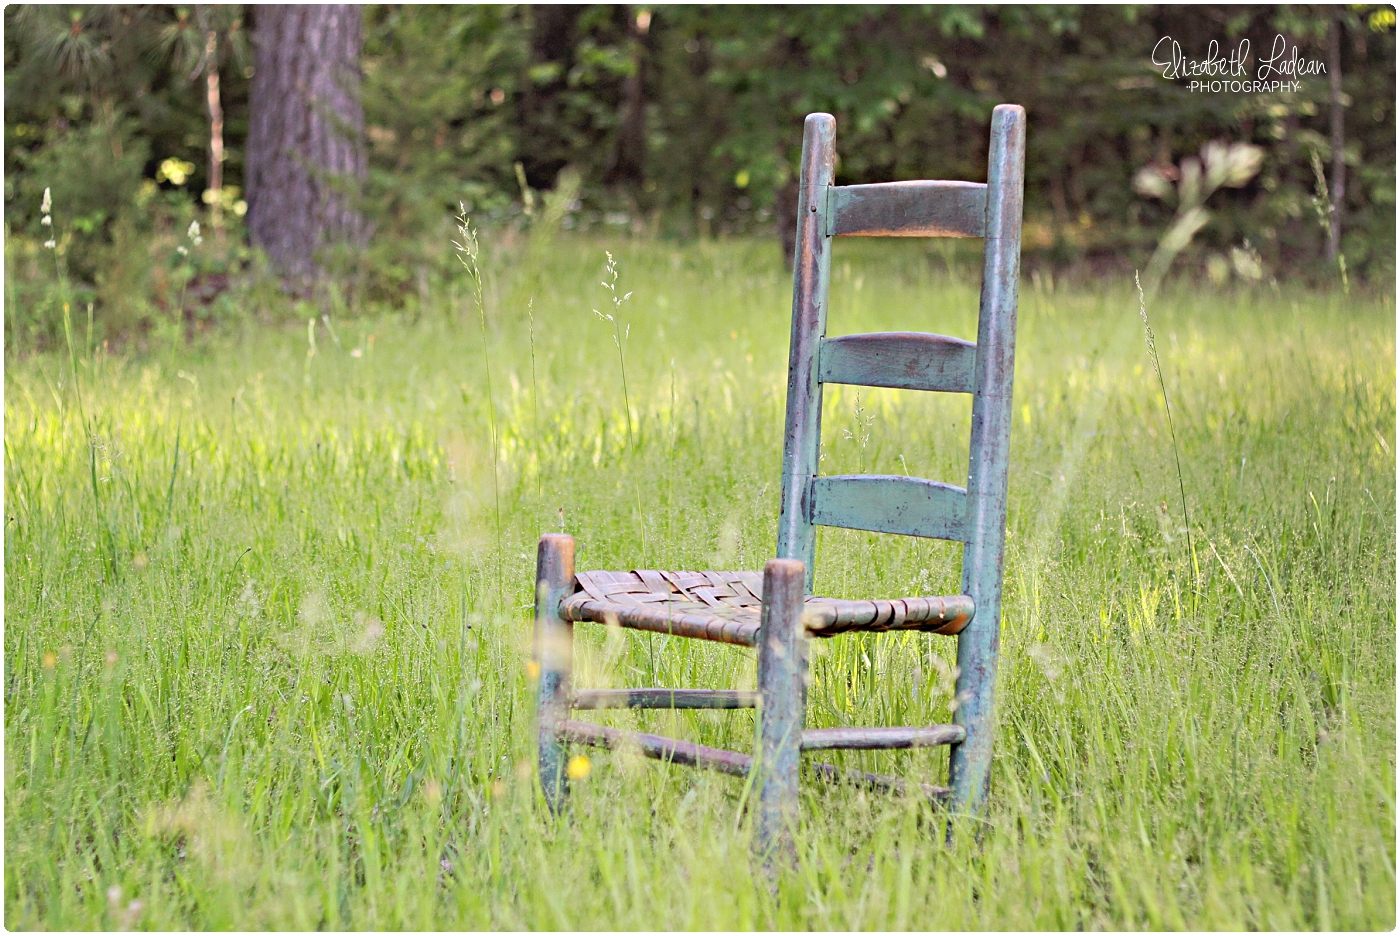 Dug out an old chair that belonged to a great-grandparent. The light and the tall grass were calling my name, even if these are just photos of an empty chair...;o)